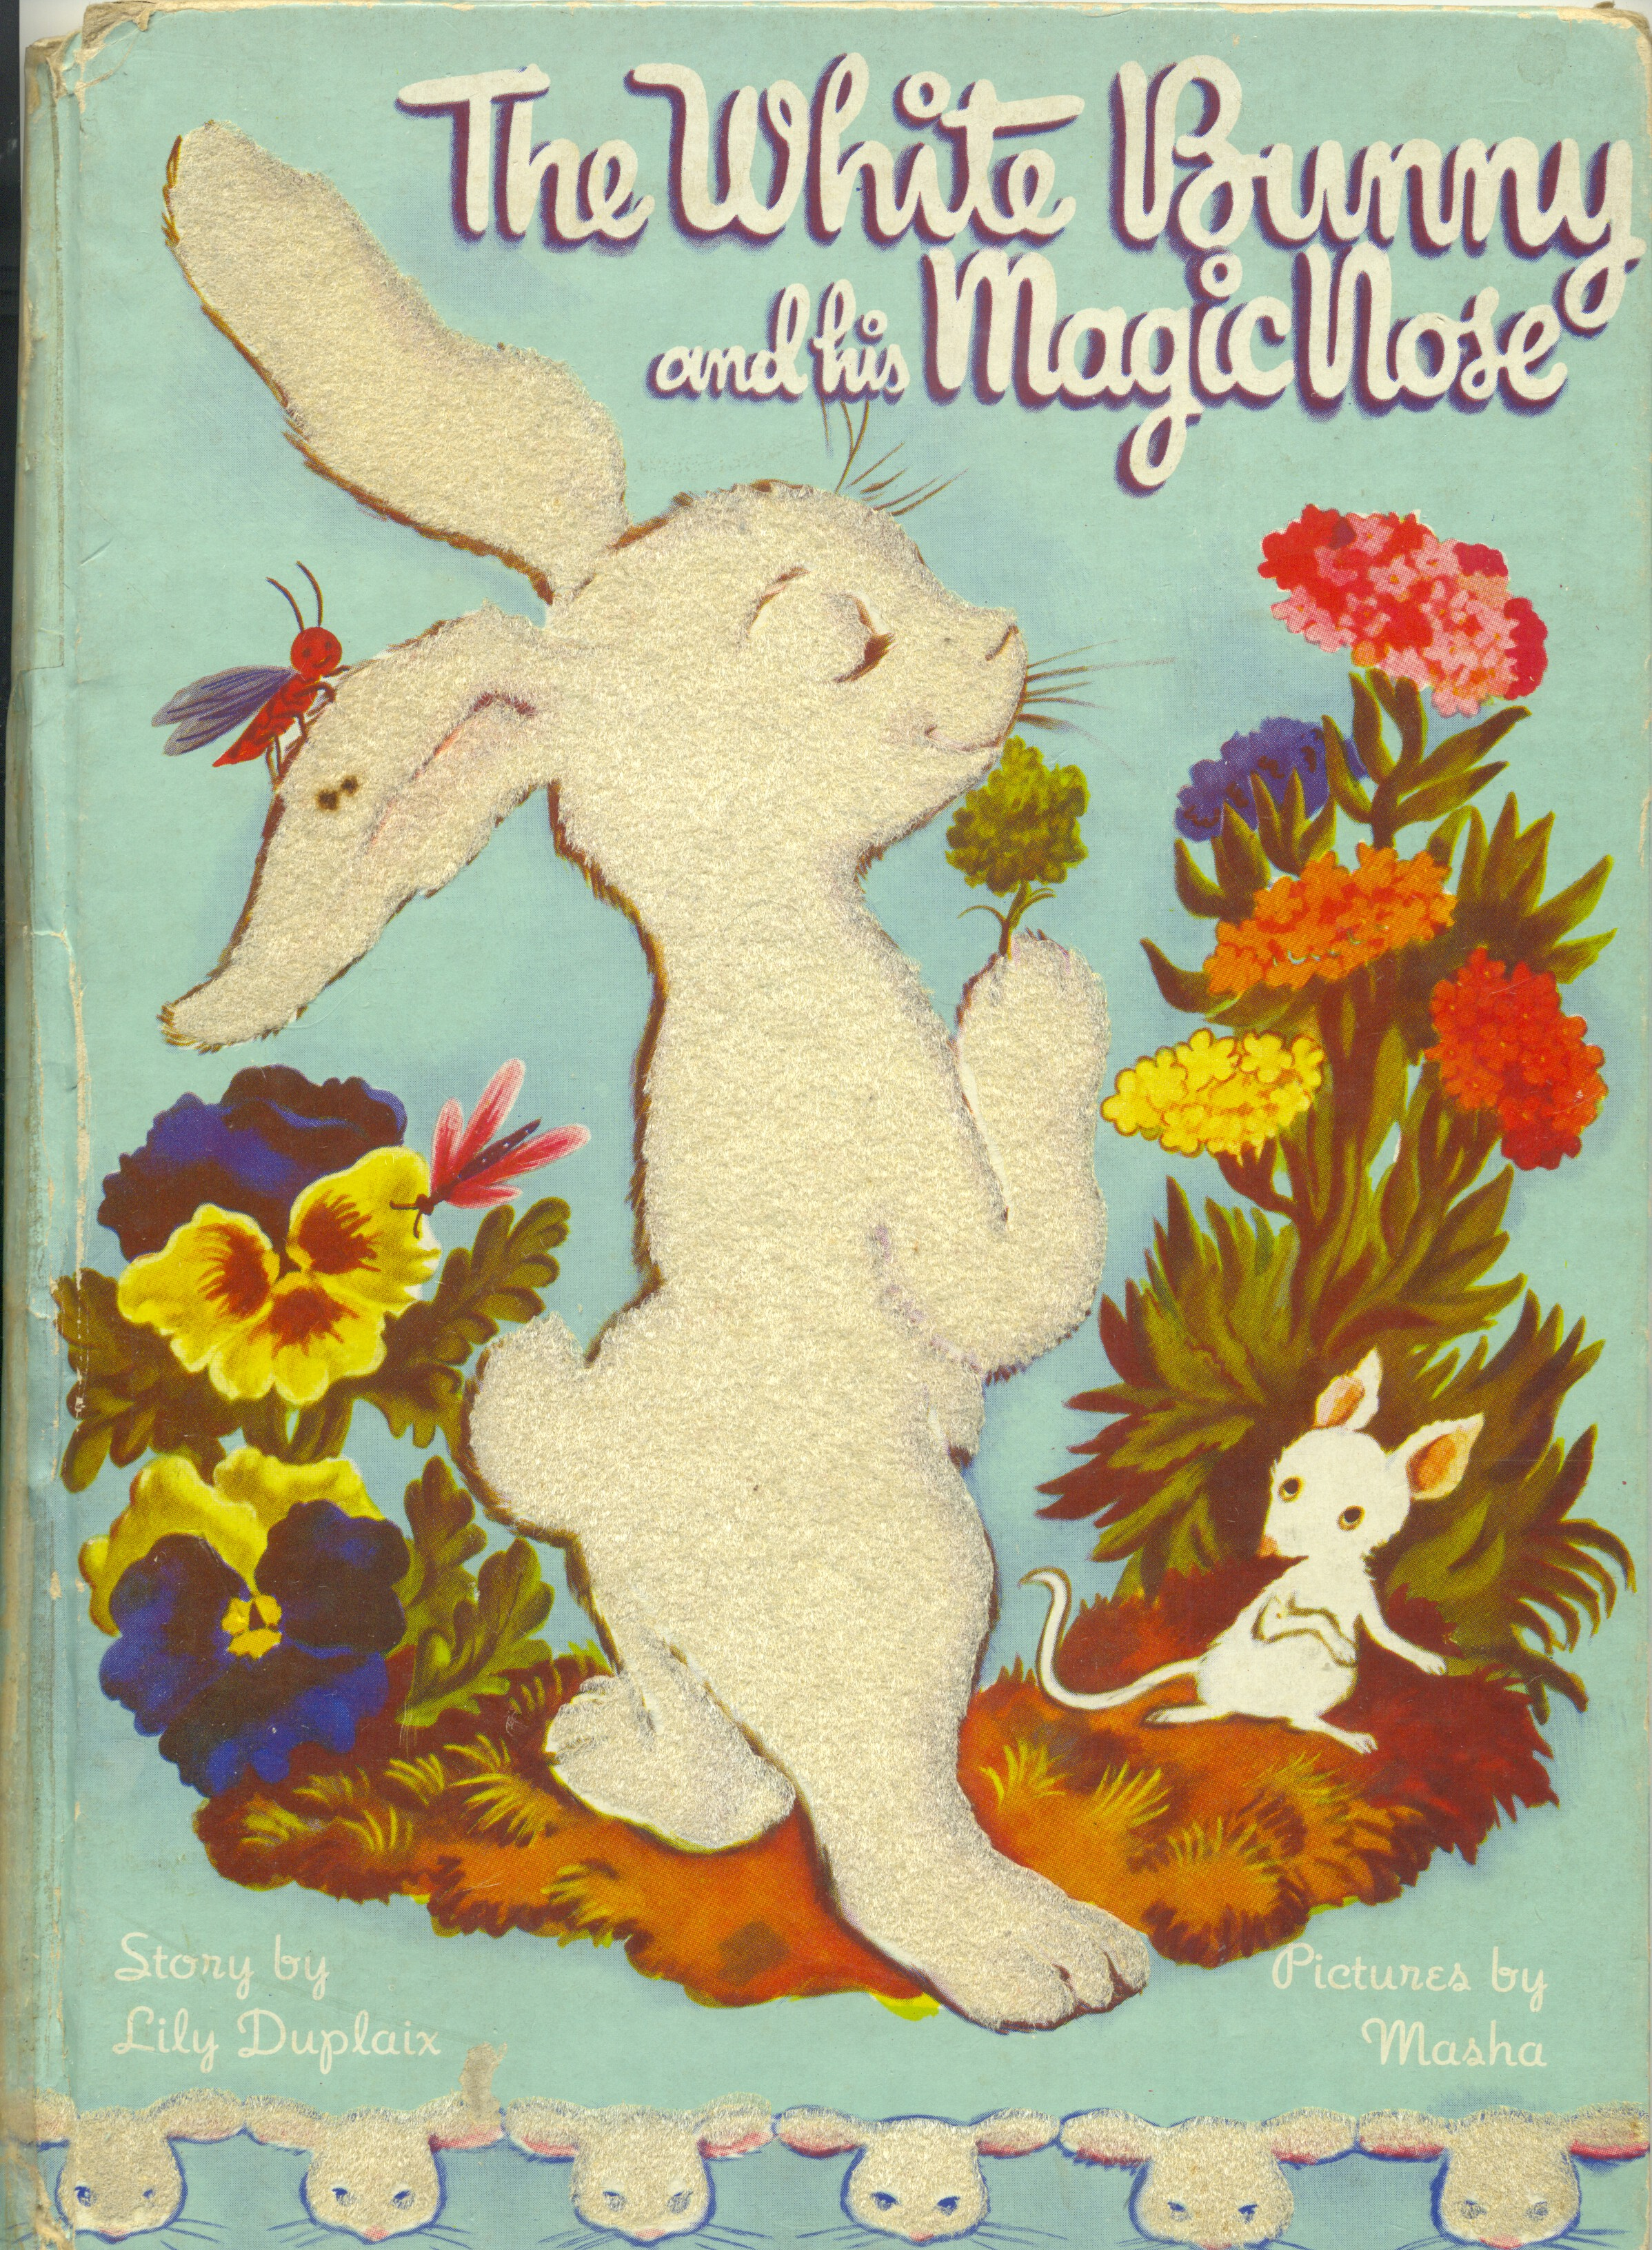 The White Bunny and His Magic Nose also illustrated by Masha ... from my antique children's book collection, 1945 ... there are white, pink, and blue fuzzy animals throughout this book